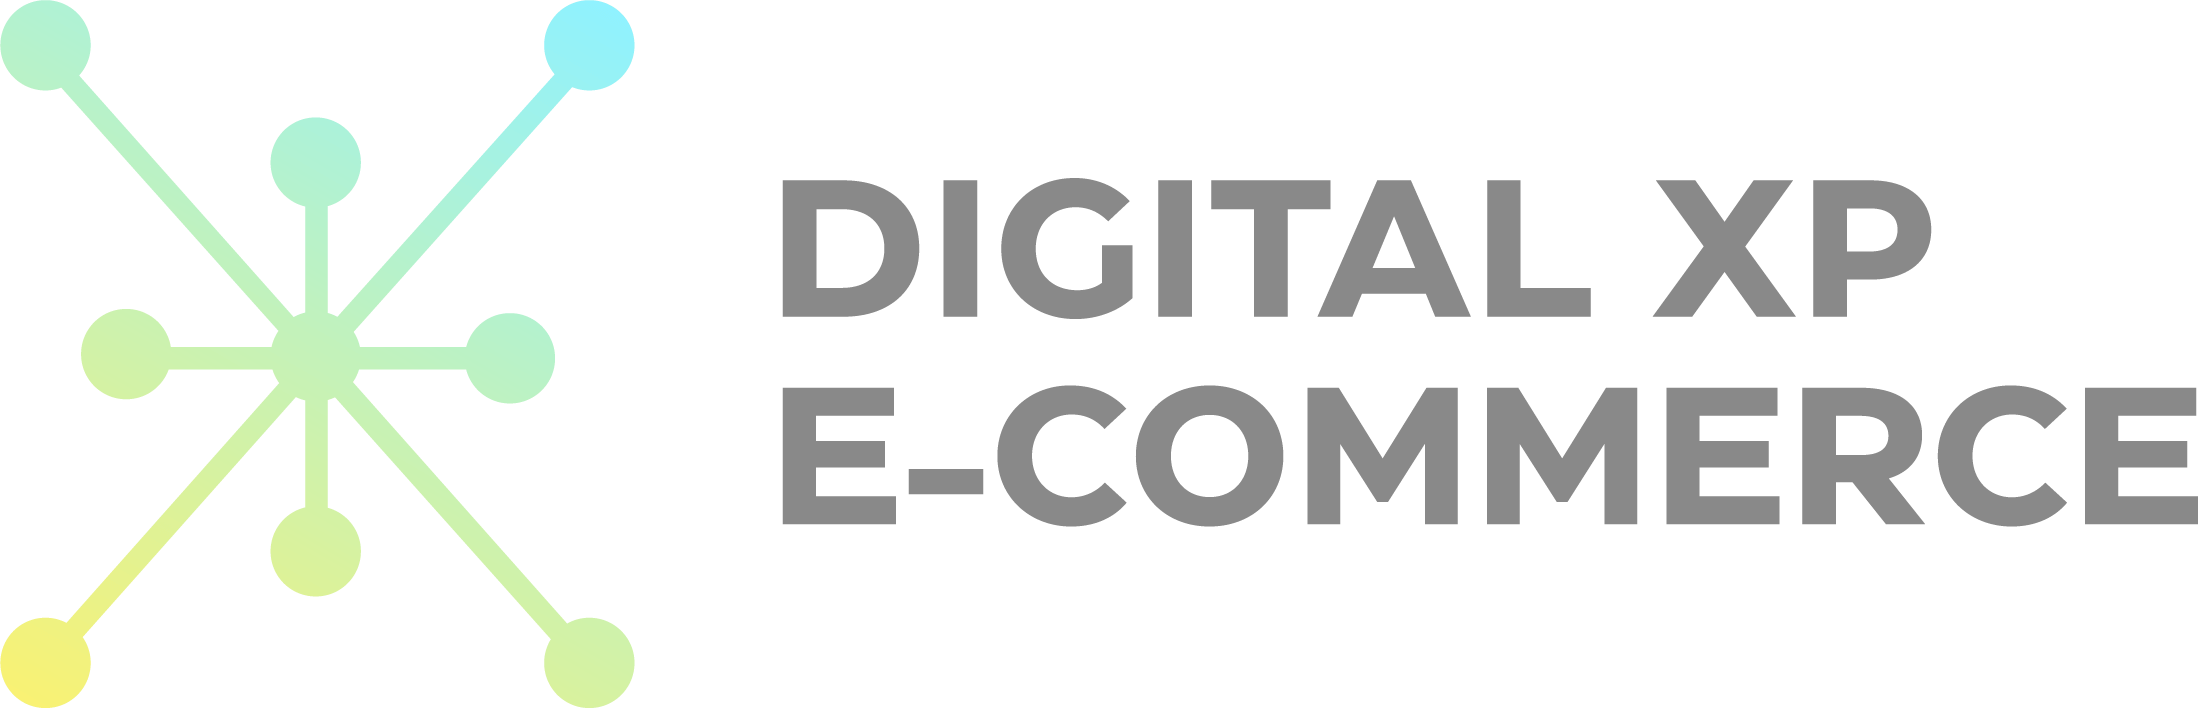 Digital XP Ecommerce